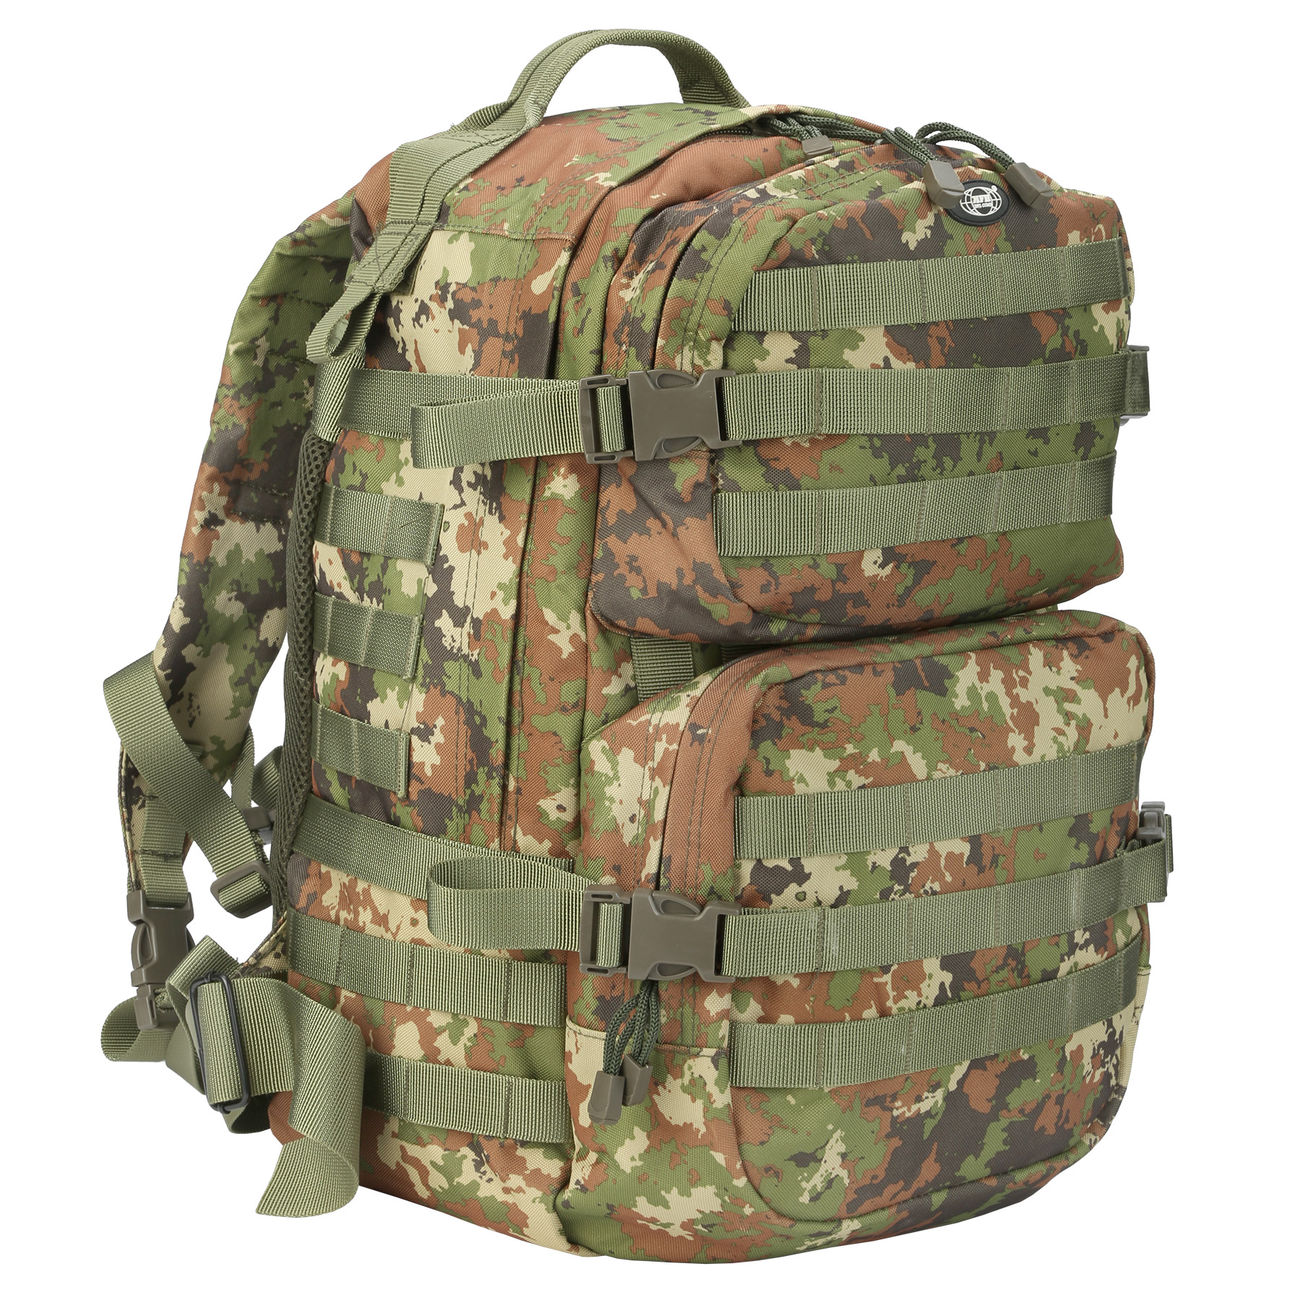 MFH Rucksack US Assault II vegetato 0